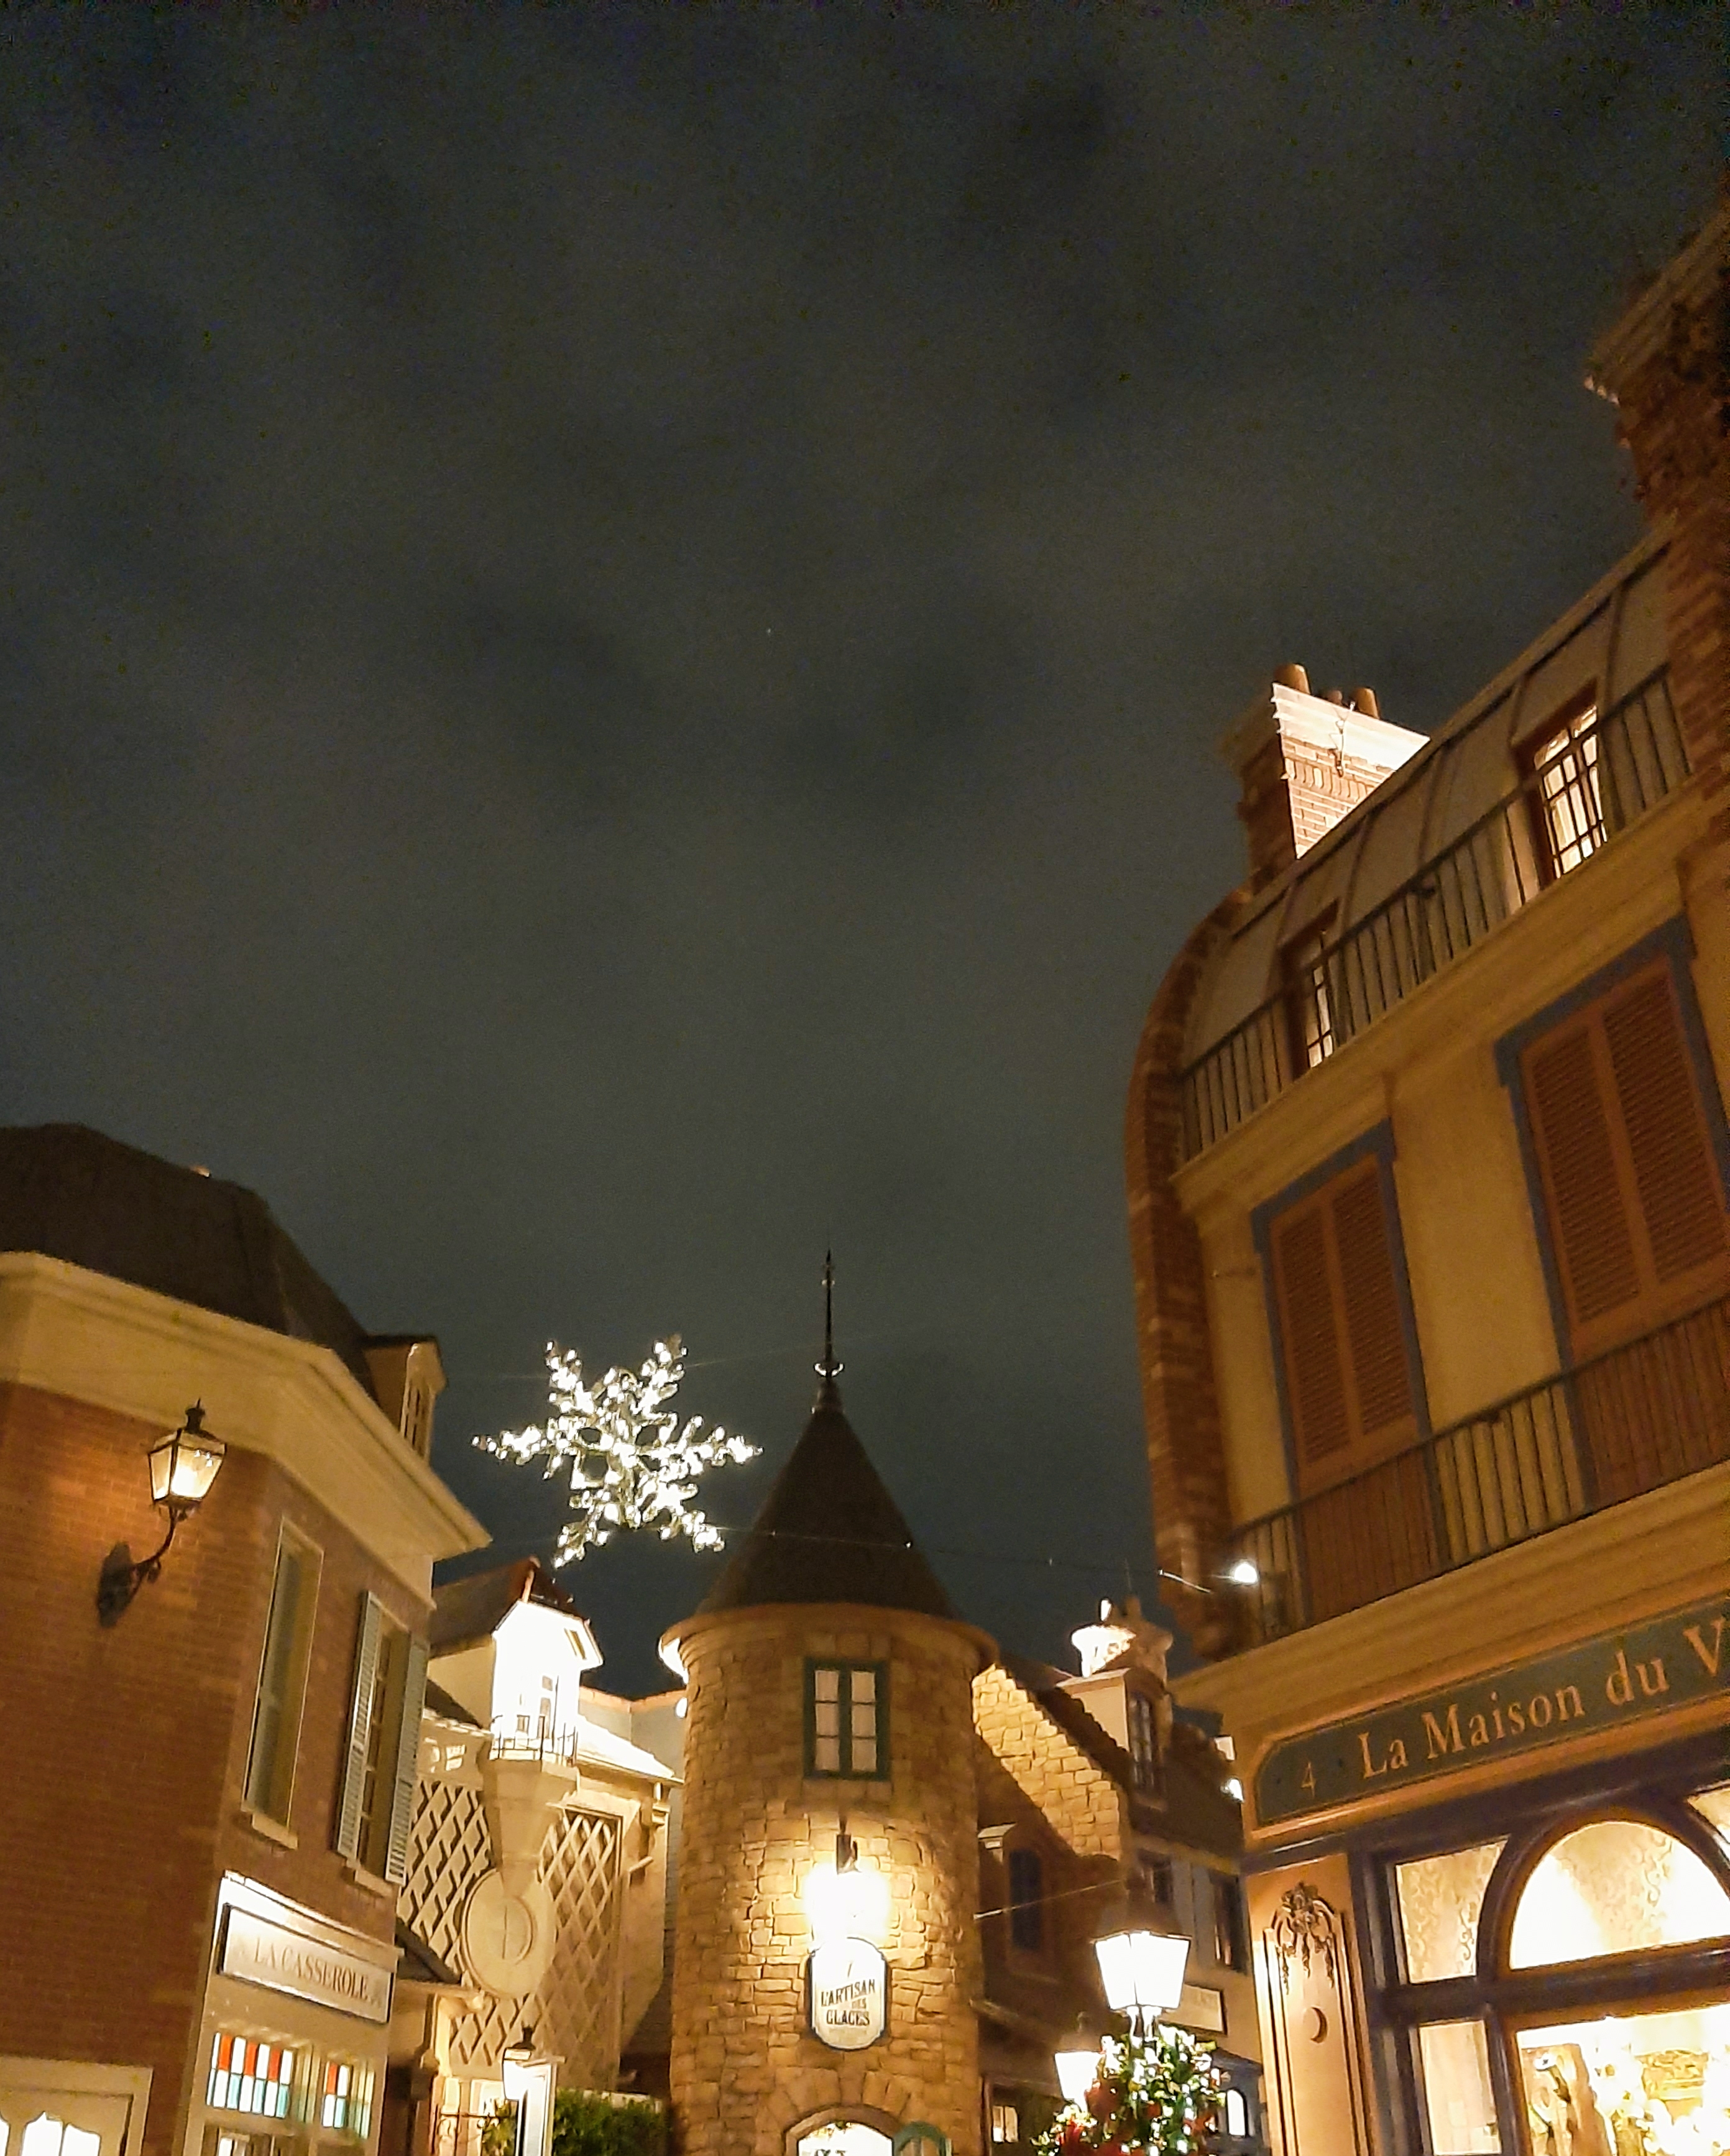 France Pavilion at night, EPCOT